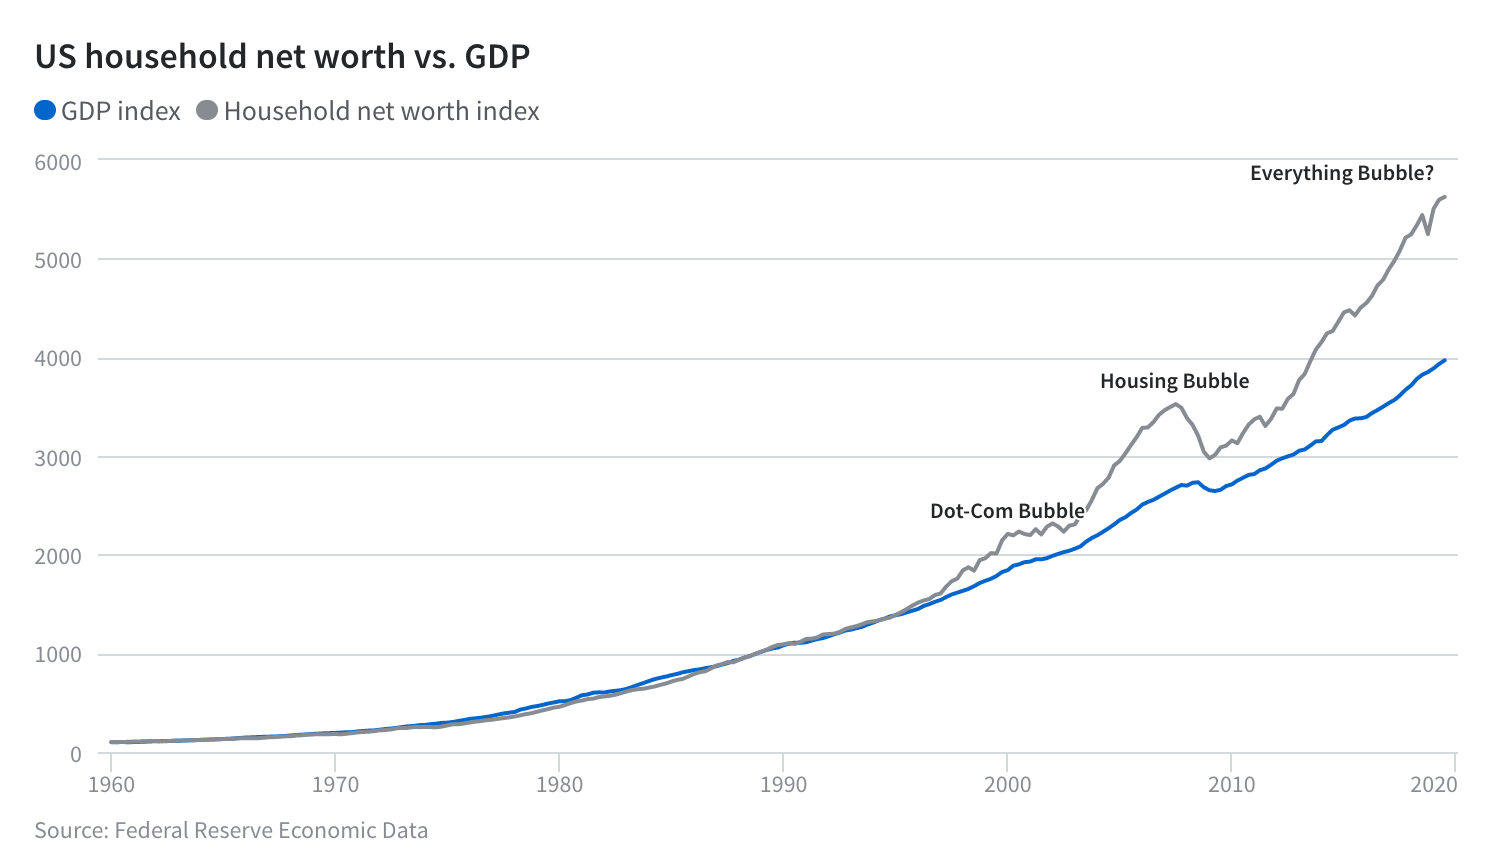 US household net worth vs. GDP